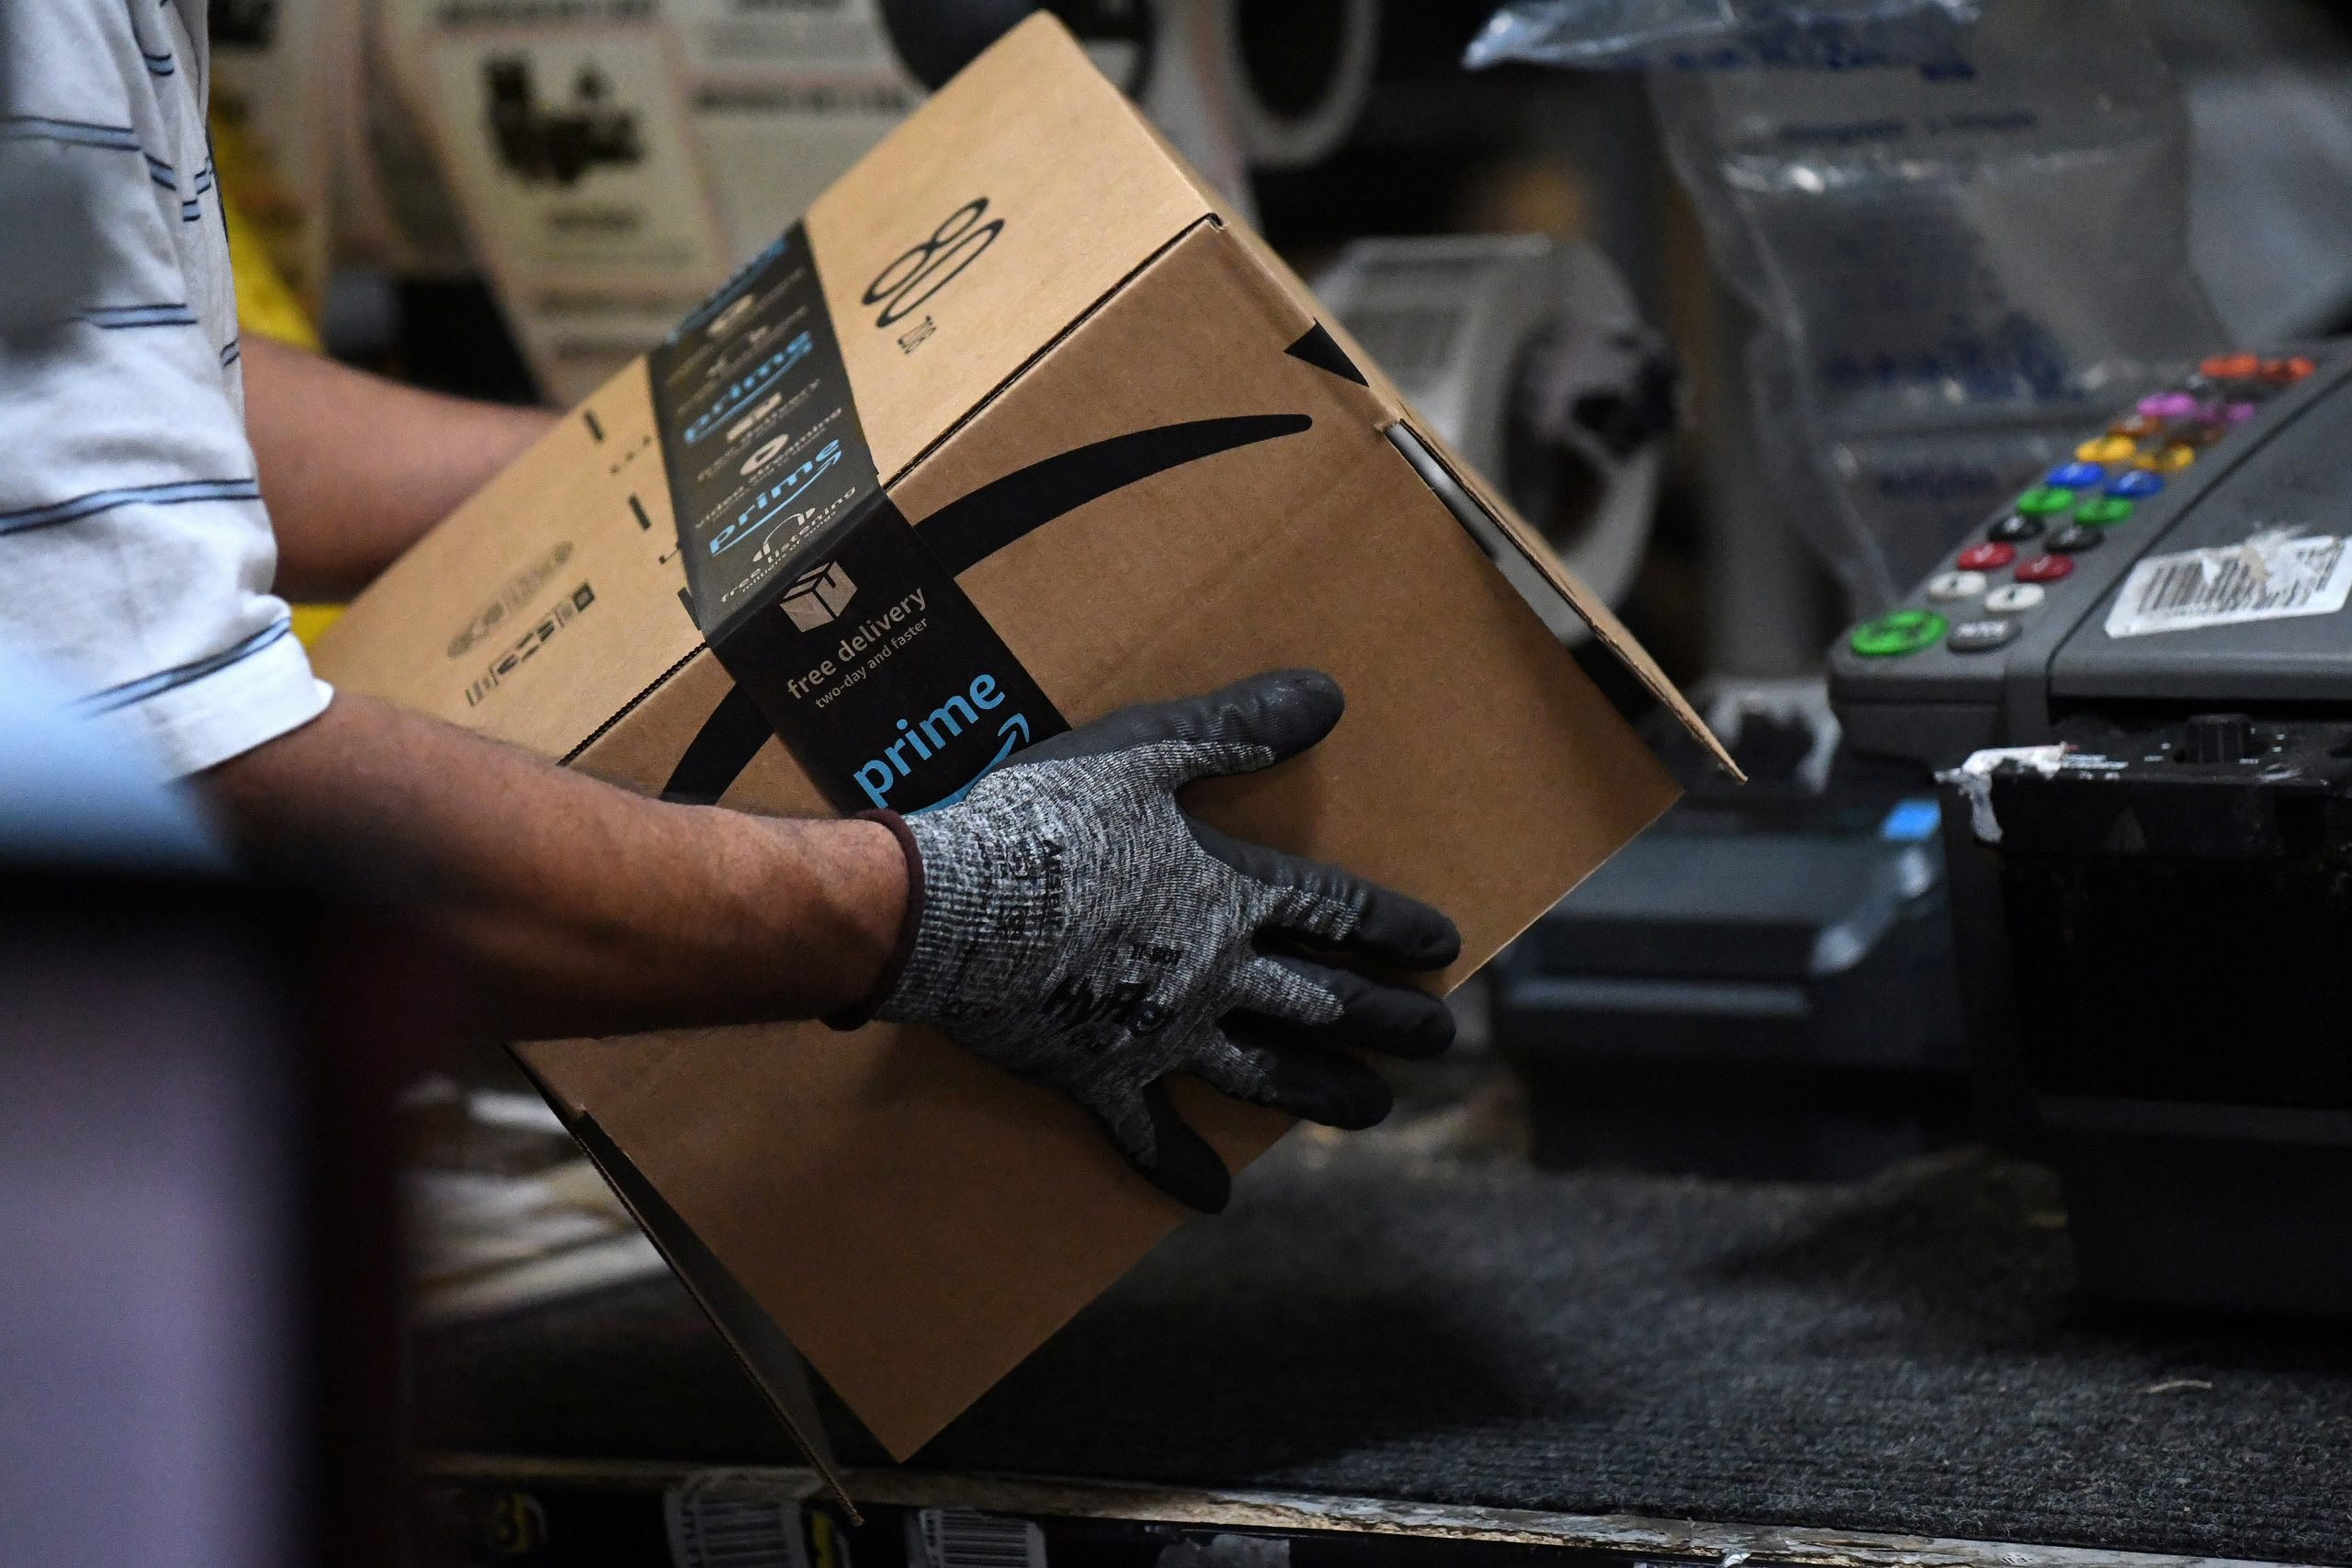 Amazon warehouse employees grapple with coronavirus risks